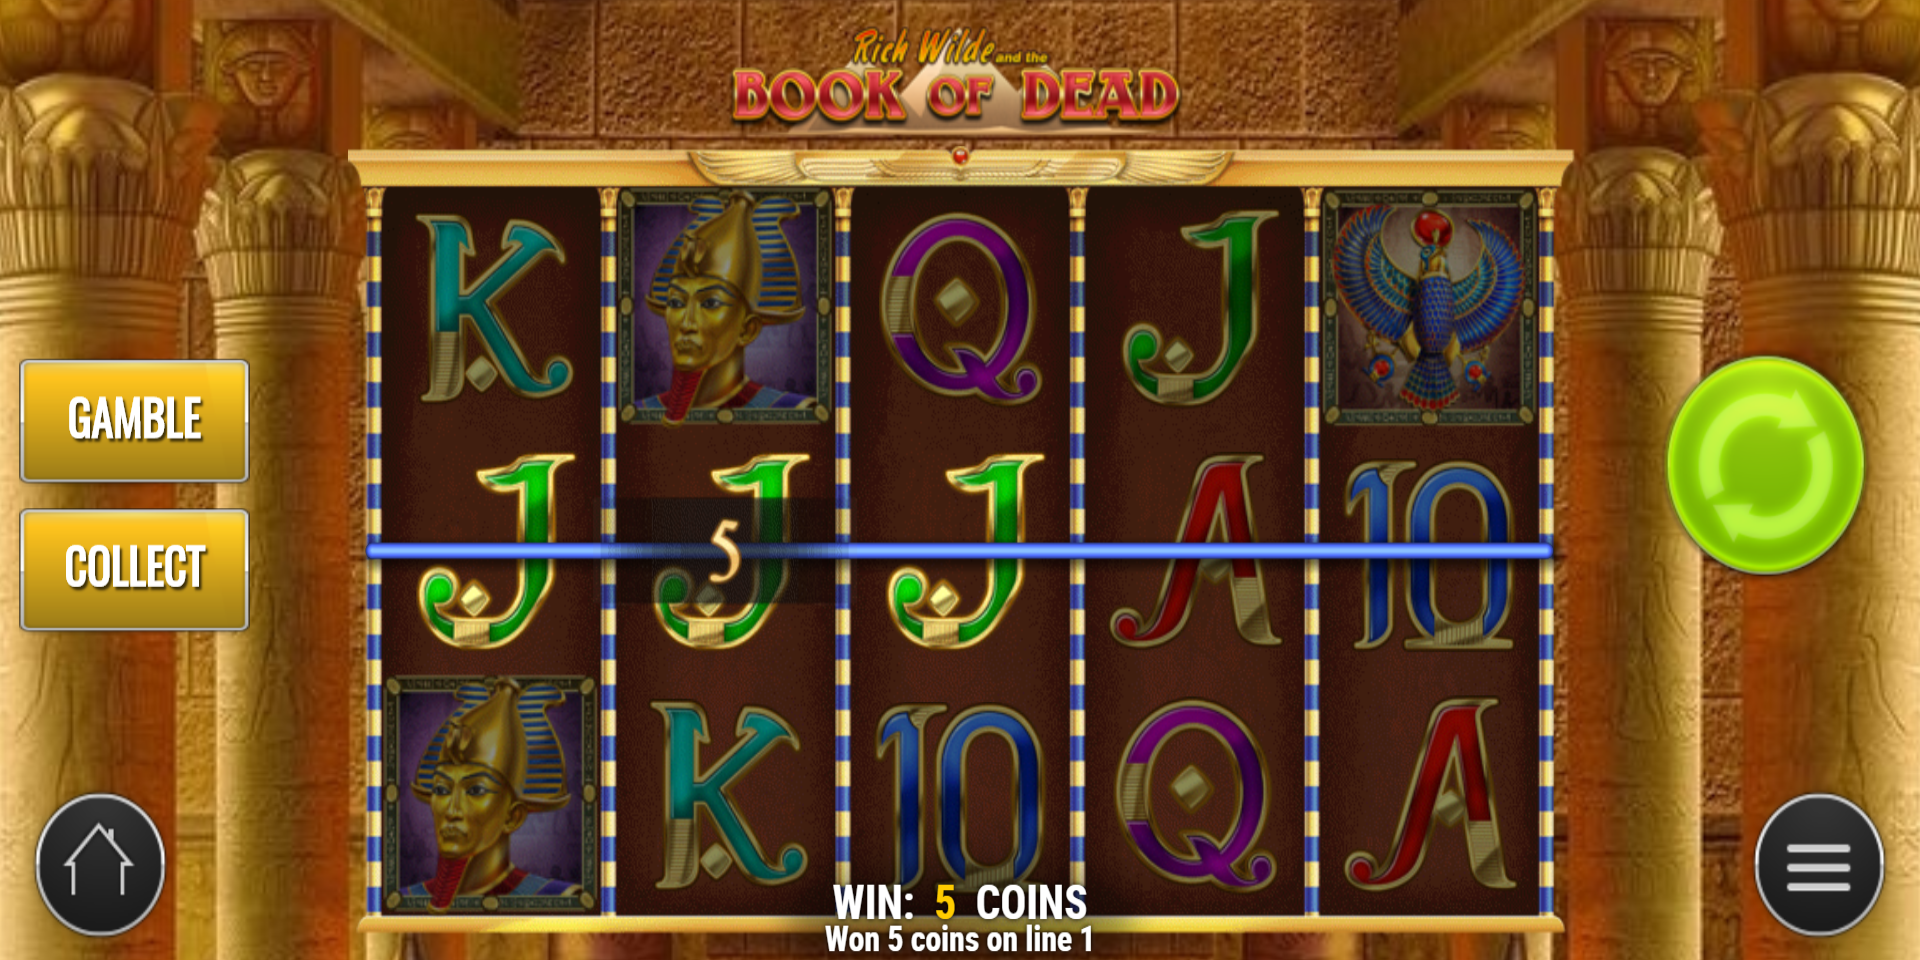 Book of Dead slot game Gamble or Collect